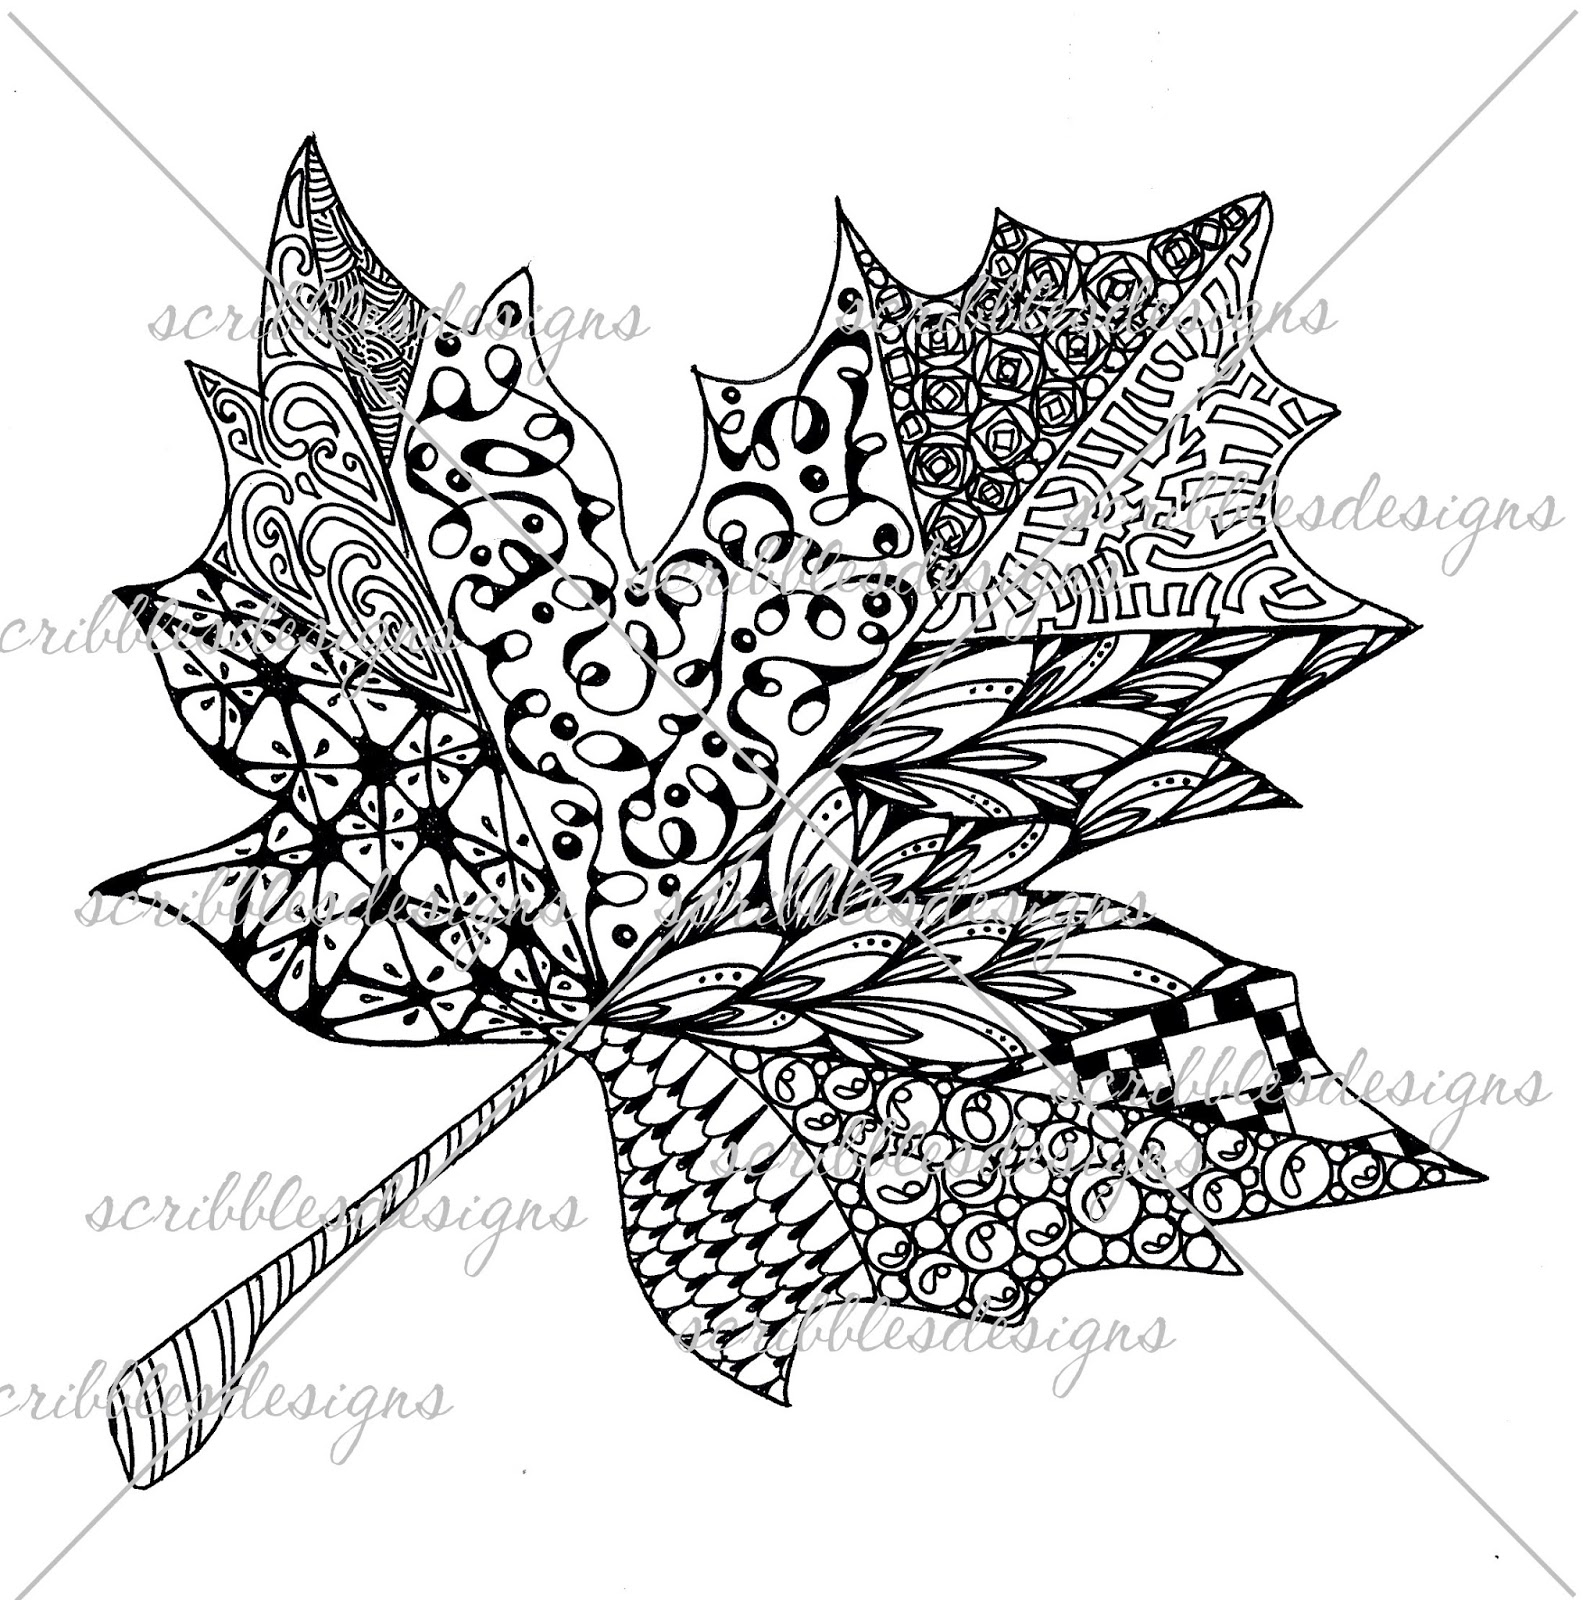 http://buyscribblesdesigns.blogspot.ca/2014/10/a-47-maple-leaf-doodle-400.html